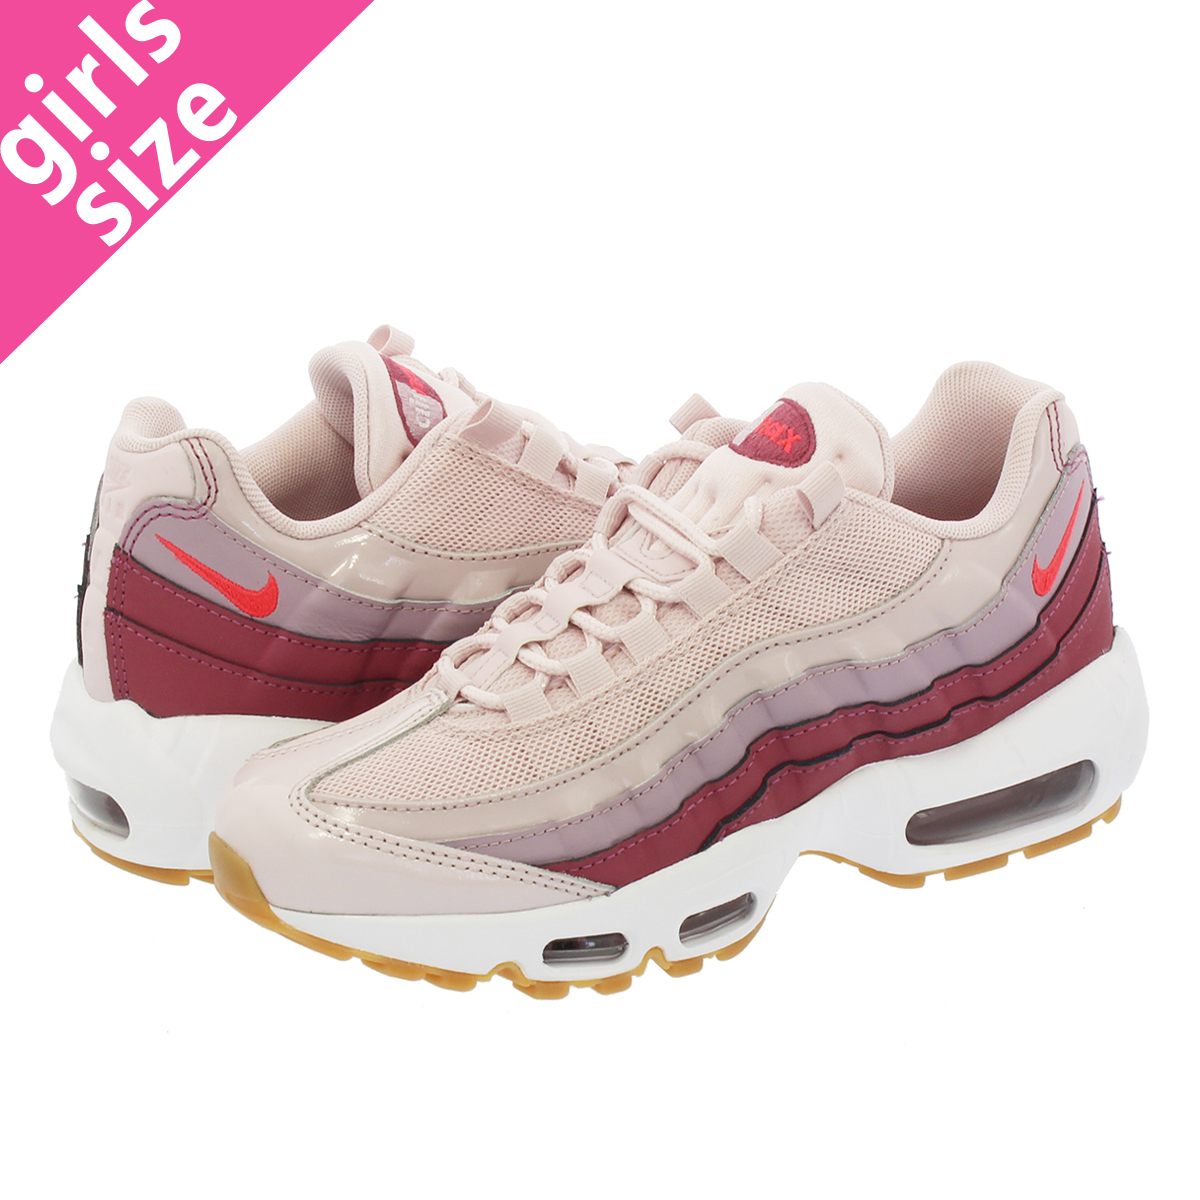 d36bbb561ef NIKE WMNS AIR MAX 95 Nike women Air Max 95 BARELY ROSE HOT PUNCH VINTAGE  WINE WHITE